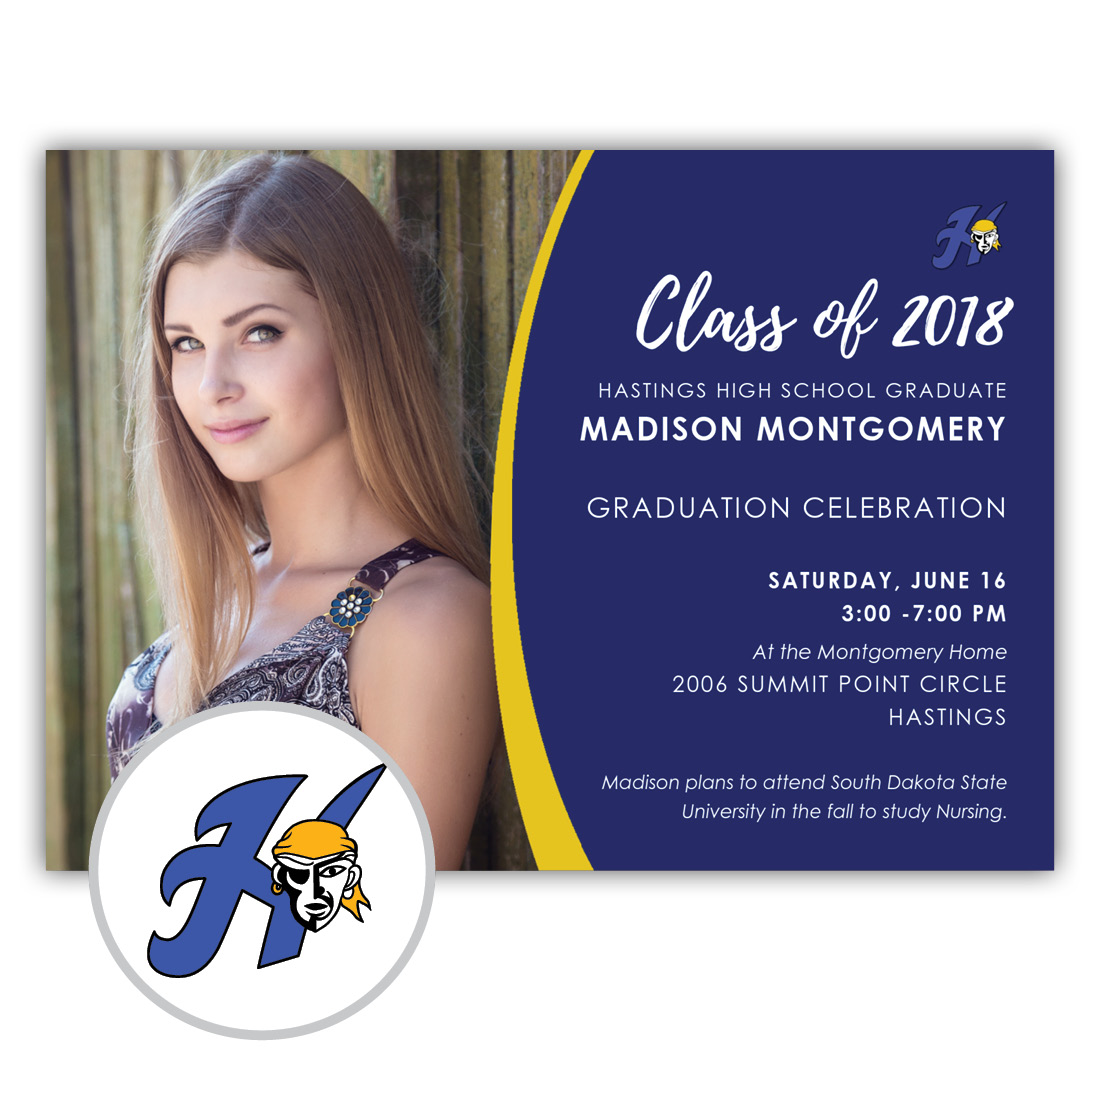 Hastings High School - Focus in Pix Graduation Invitation or Announcement